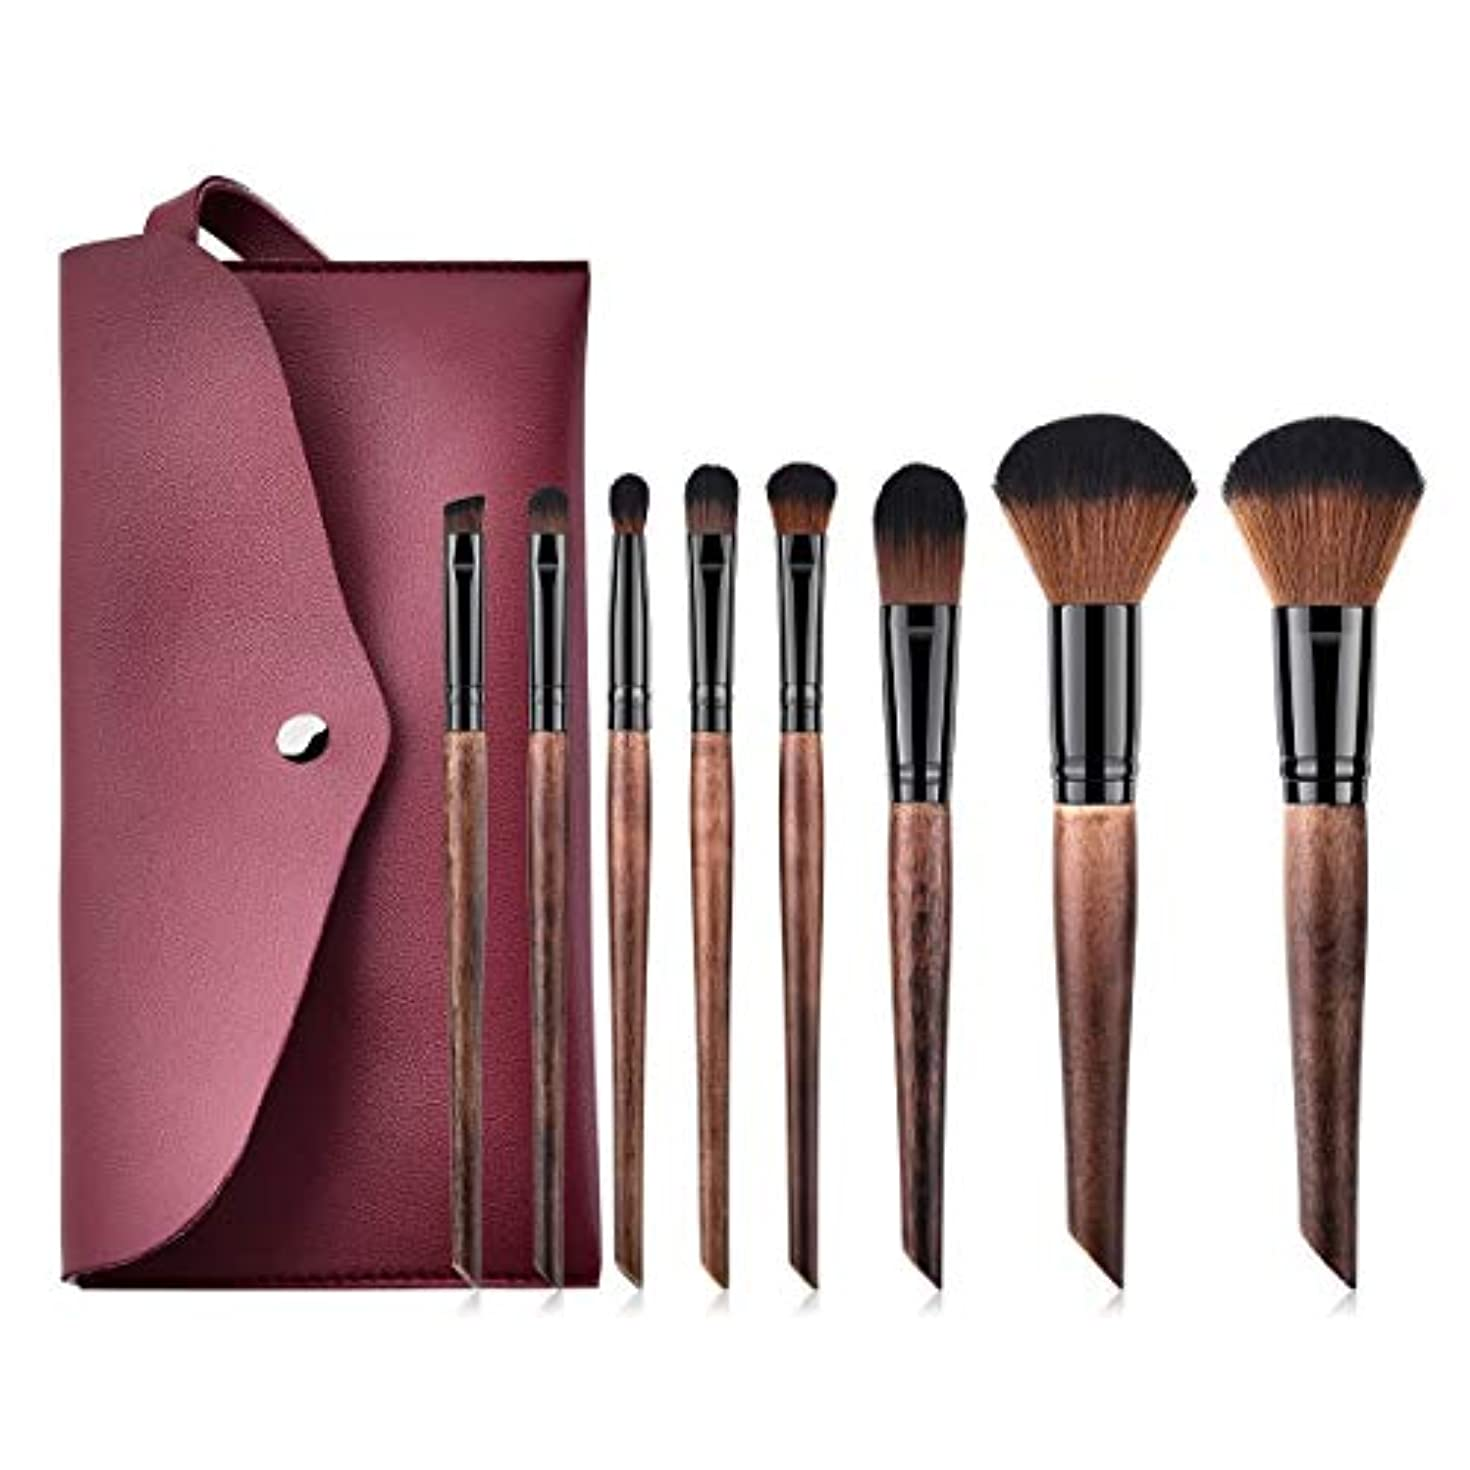 Makeup brushes PUバッグ付きマホガニー製化粧ブラシ8本 suits (Color : Red)